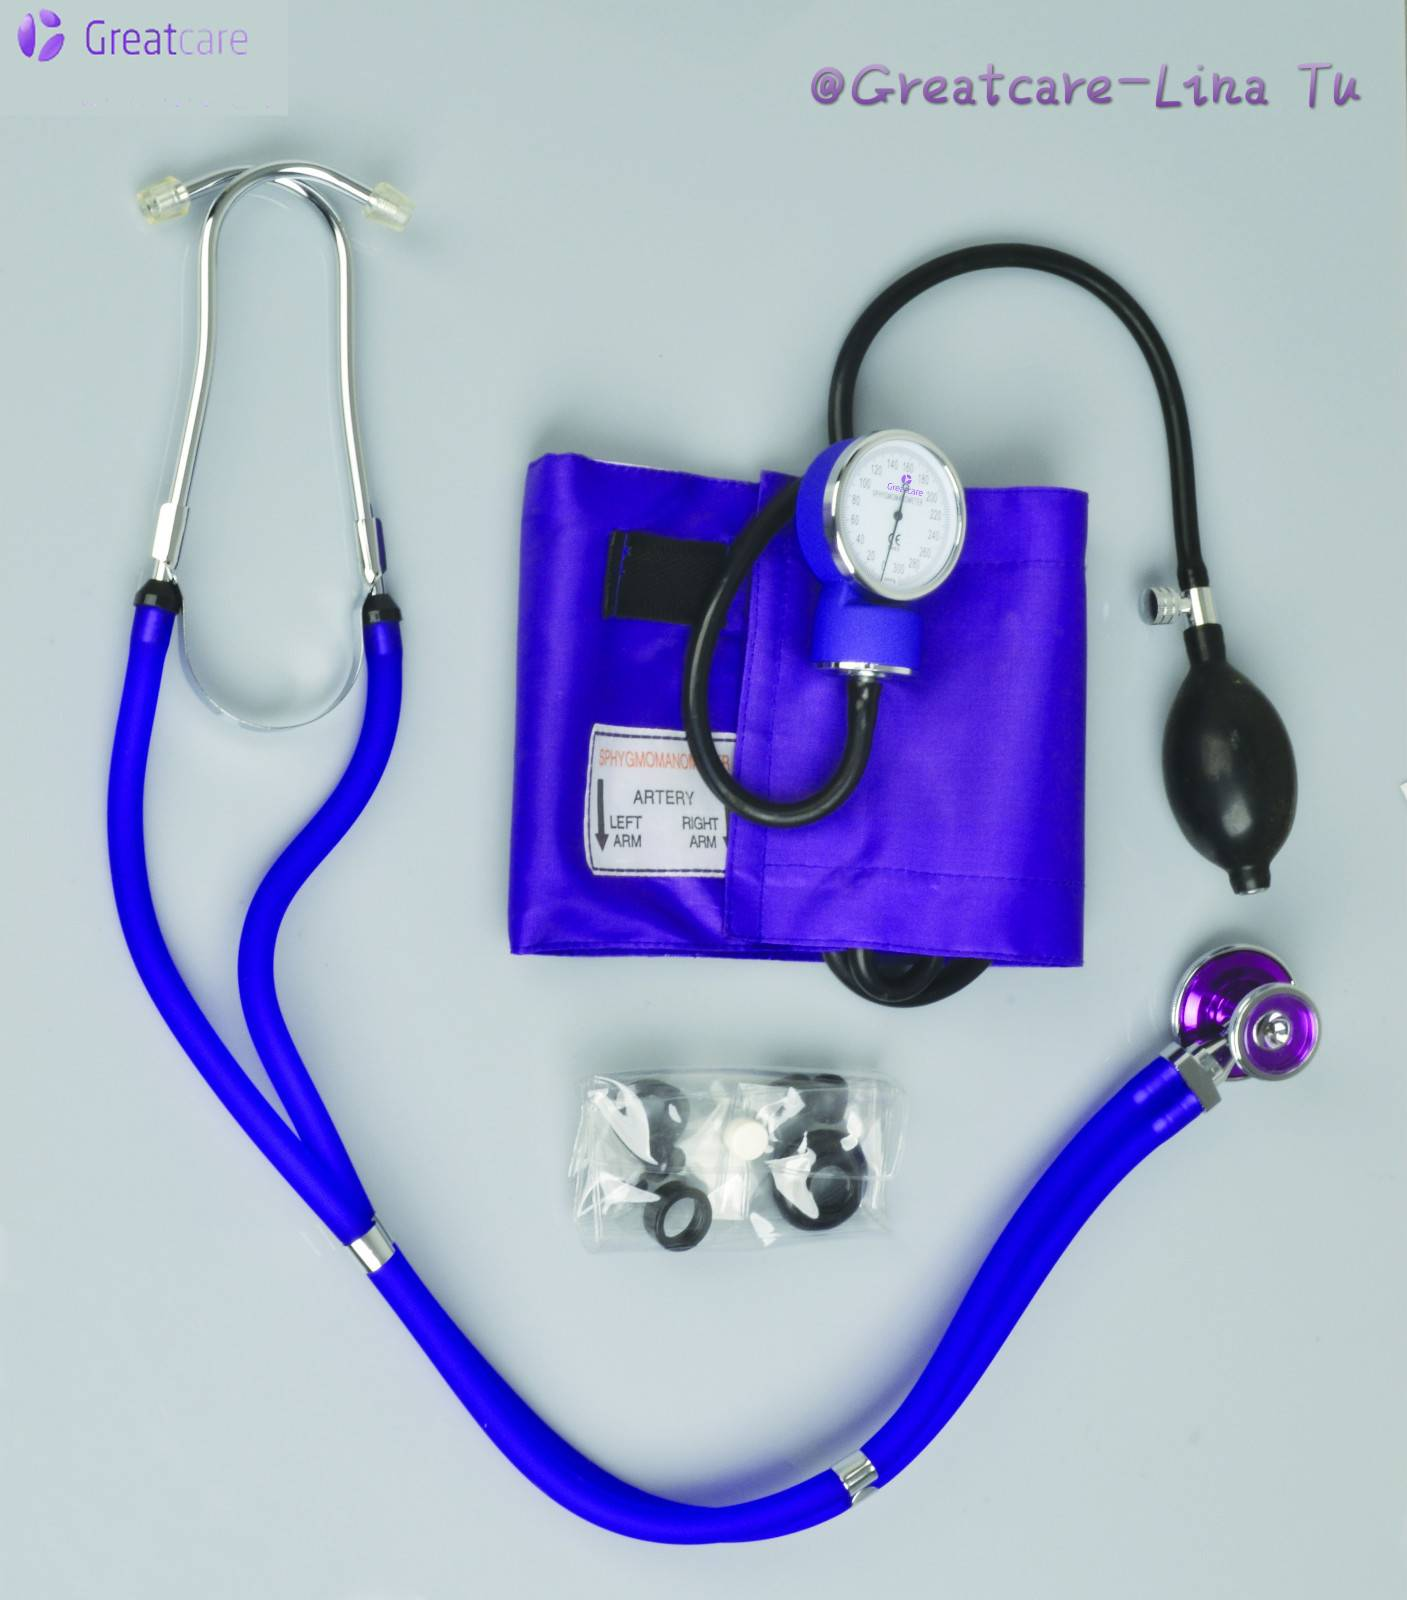 stainless Stethoscope, cardiology stethoscope with single/dual type